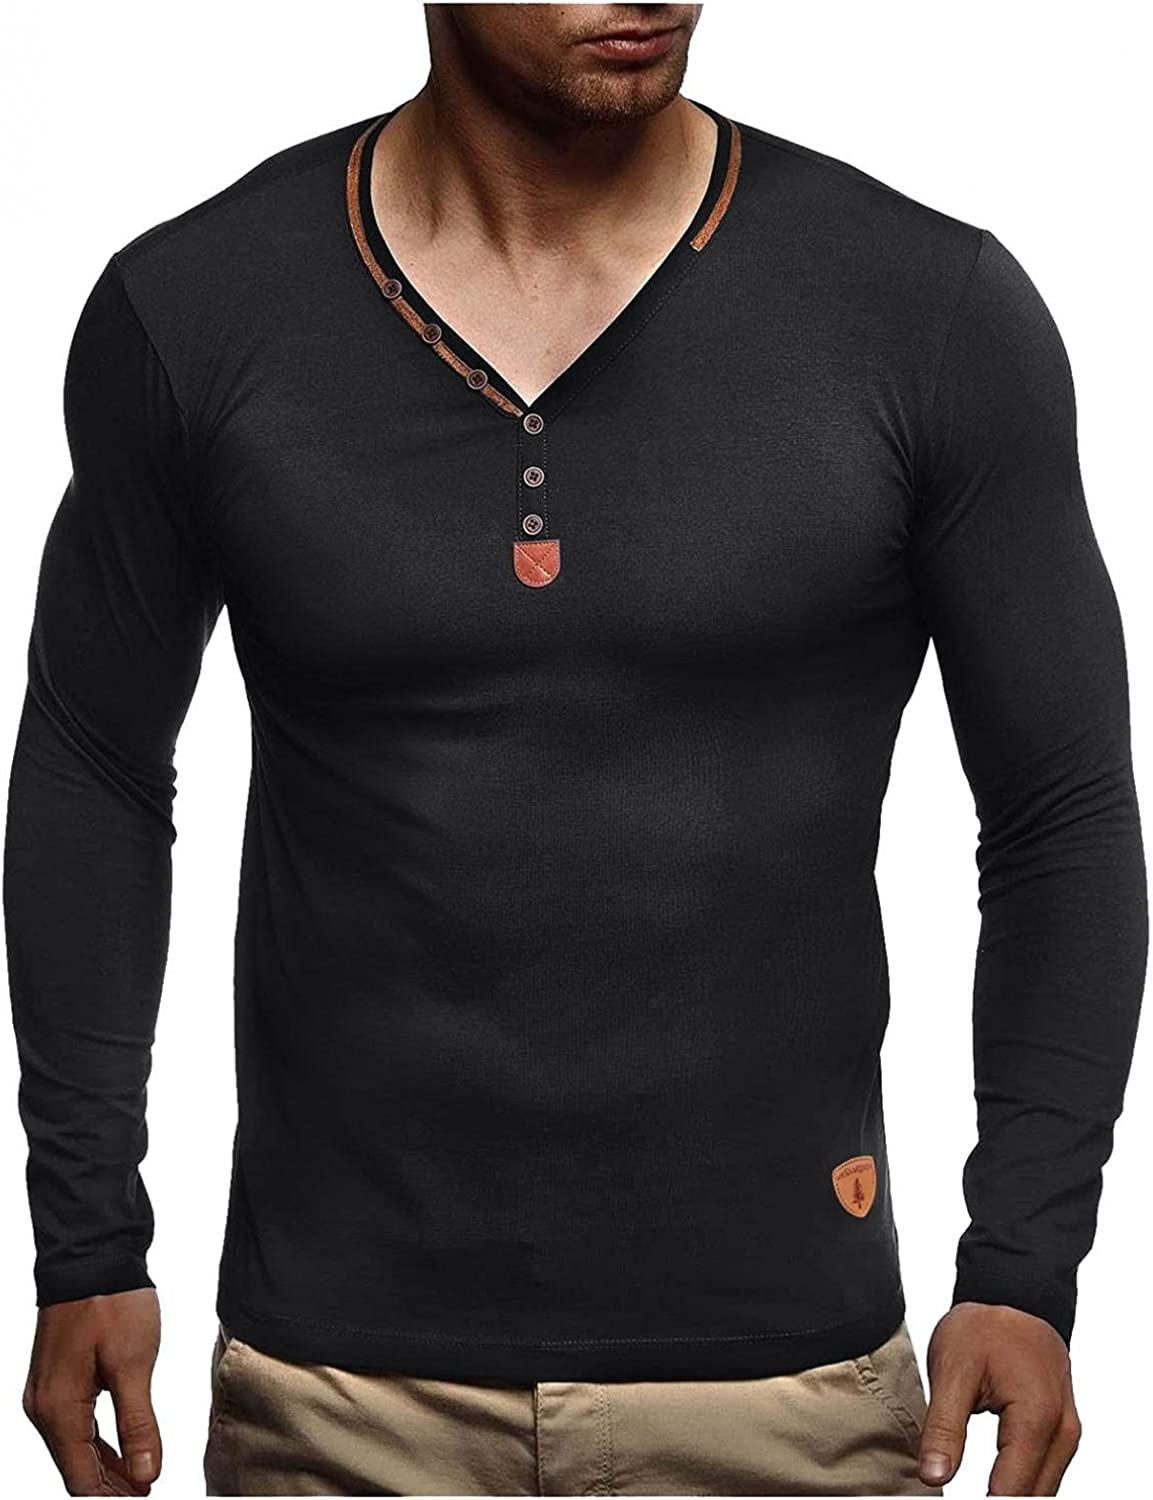 Aayomet Men's Tee Shirts Solid Tops Button Casual Workout Athletic Long Sleeve Pullover T-Shirts Blouses for Men